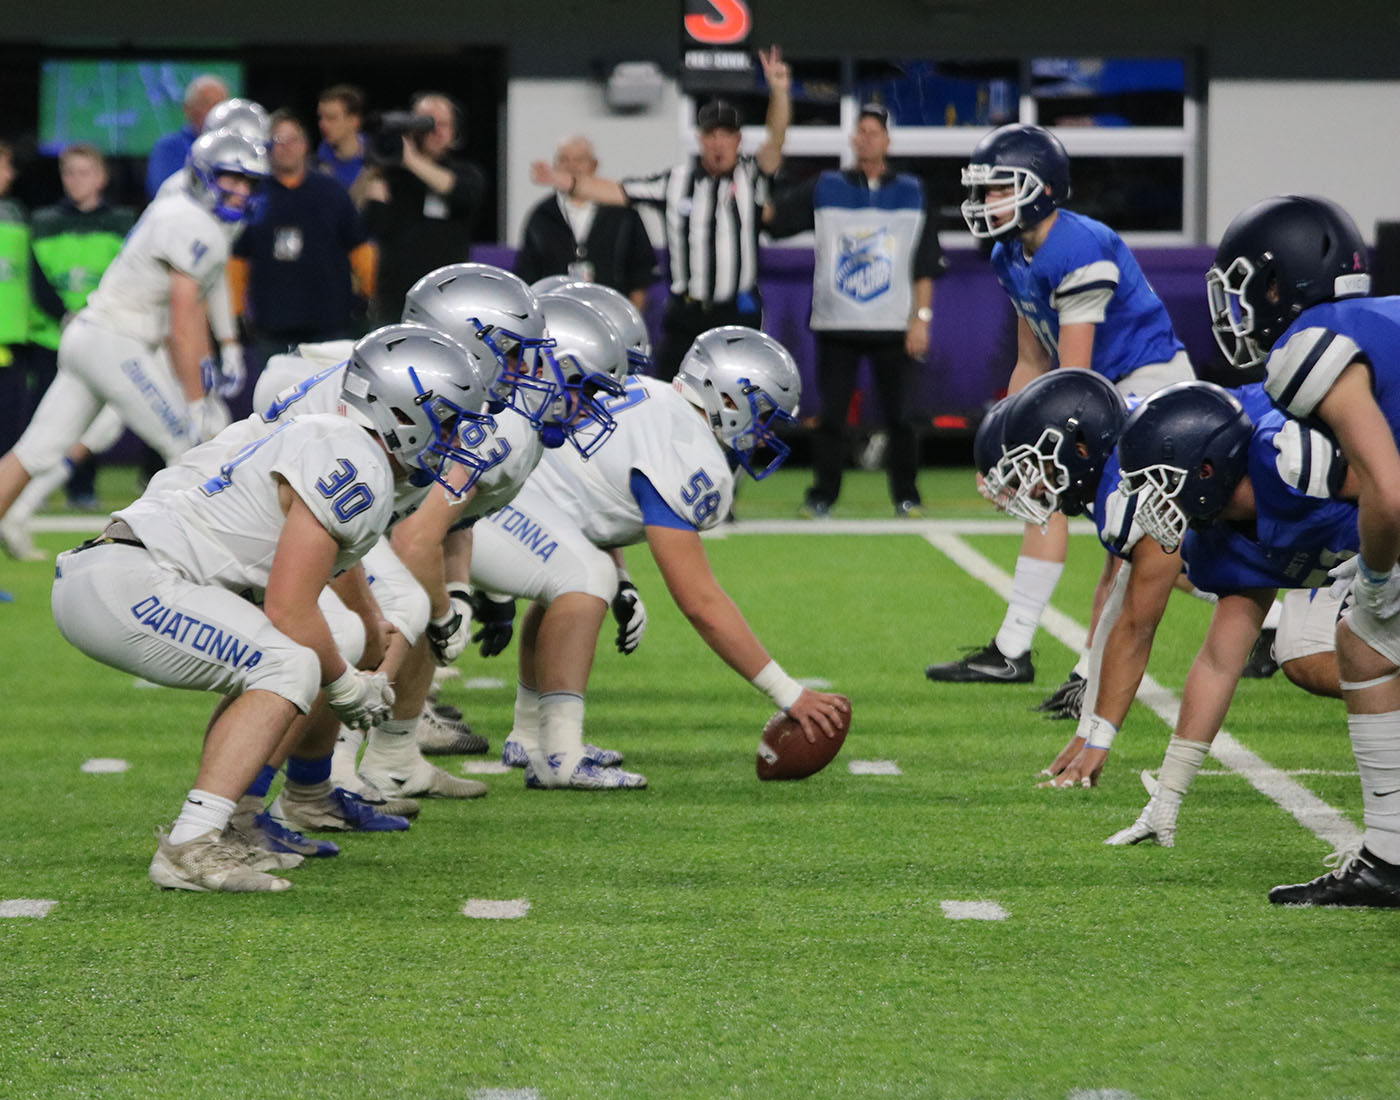 Owatonna+blue+collar+lines+up+pre-snap